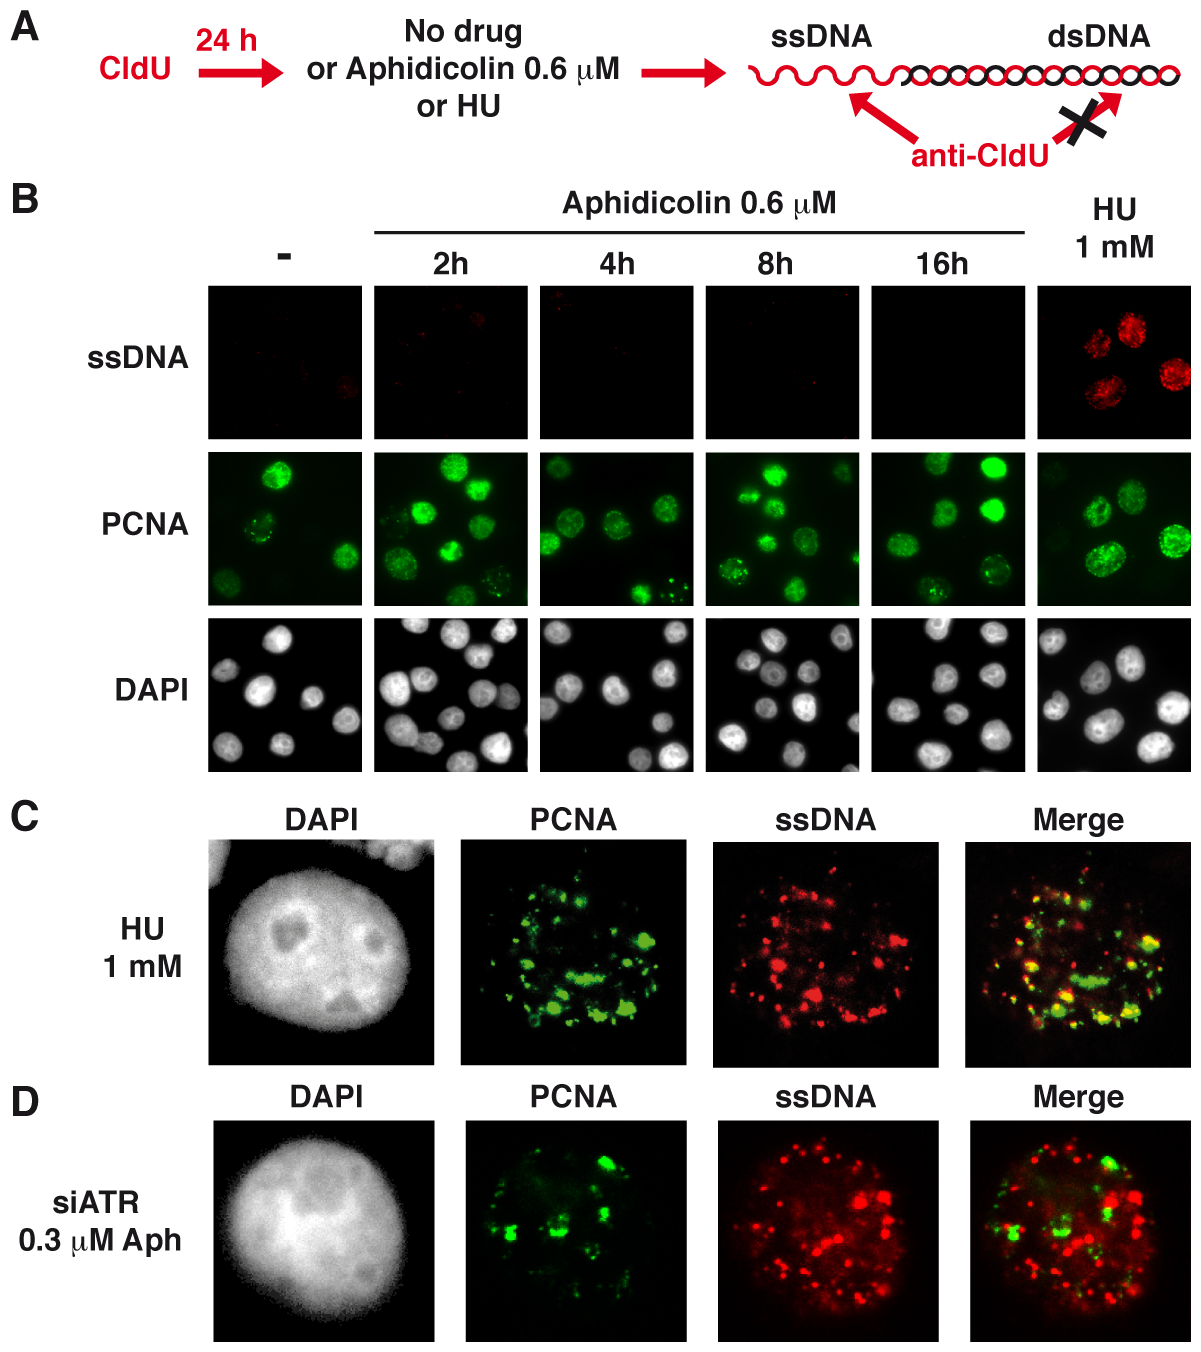 Moderate fork slowing is not associated with formation of ssDNA foci.